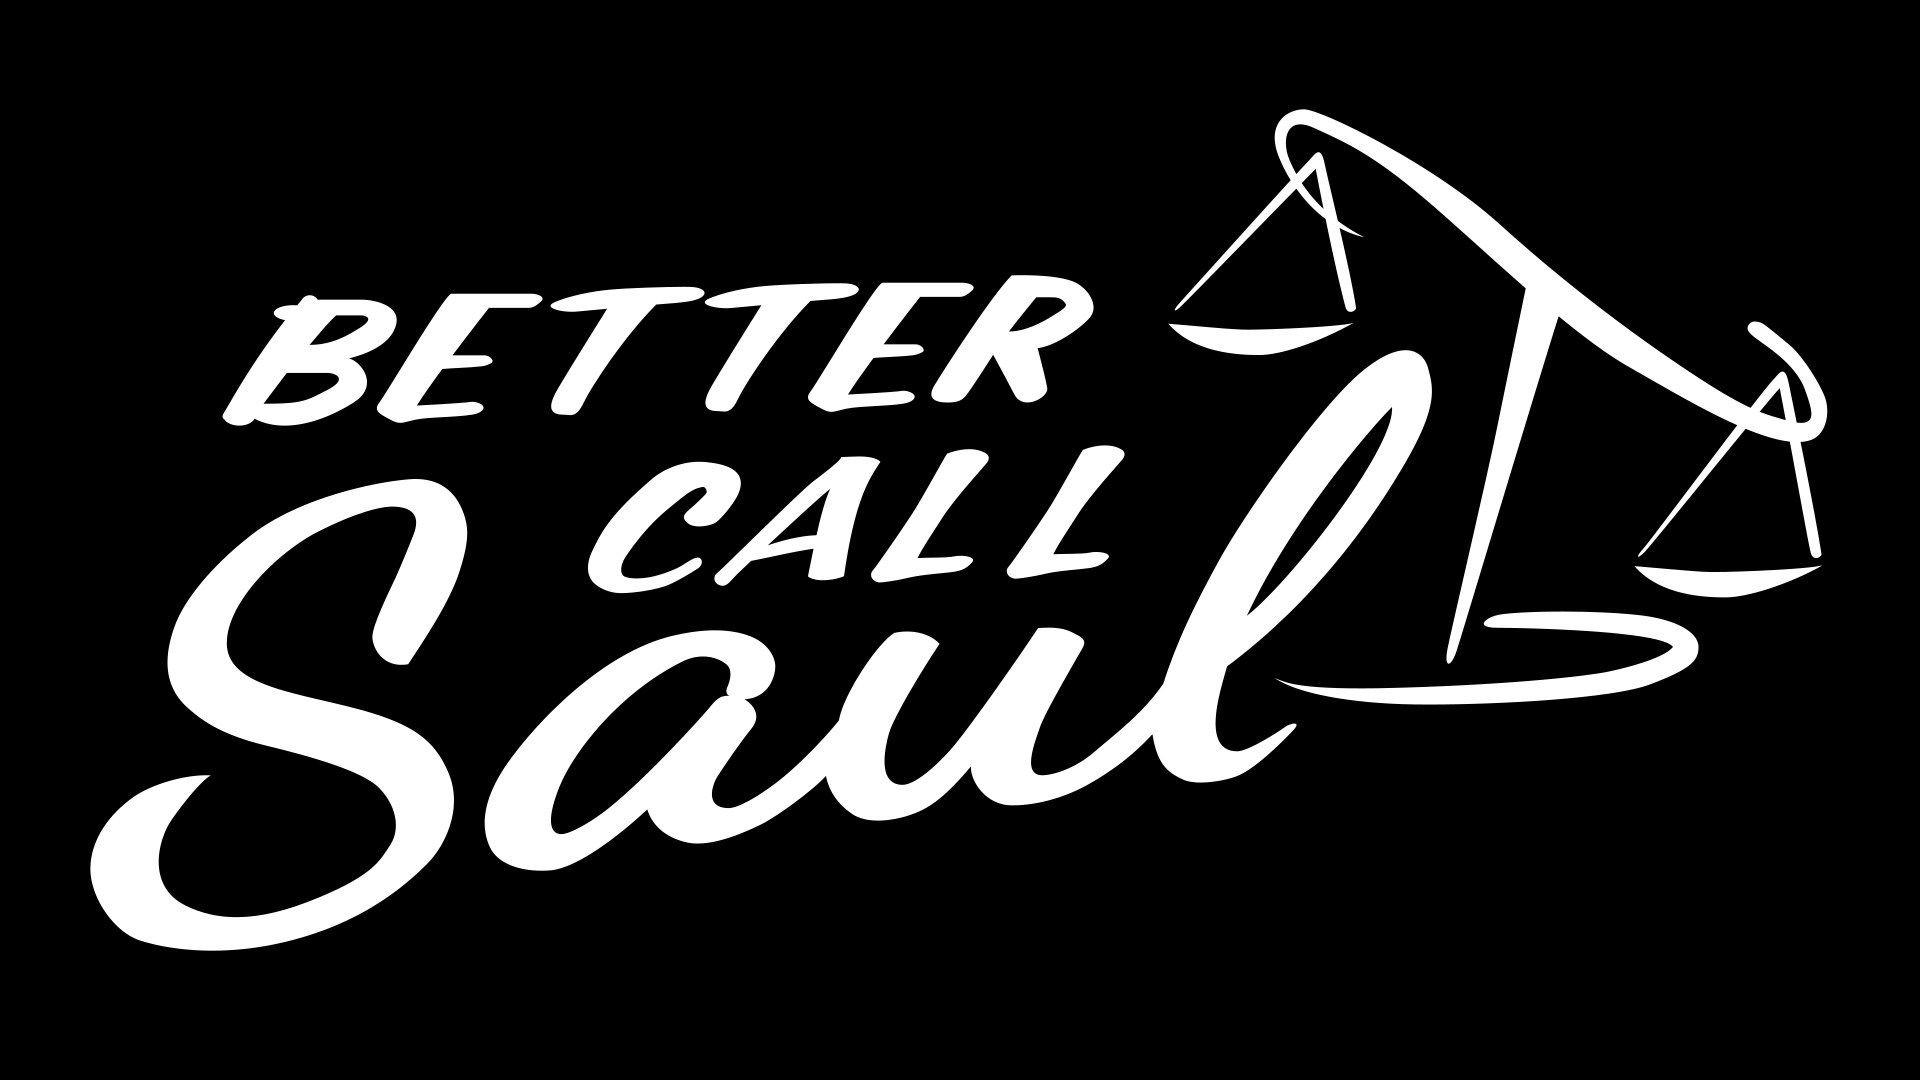 1978773, better call saul category